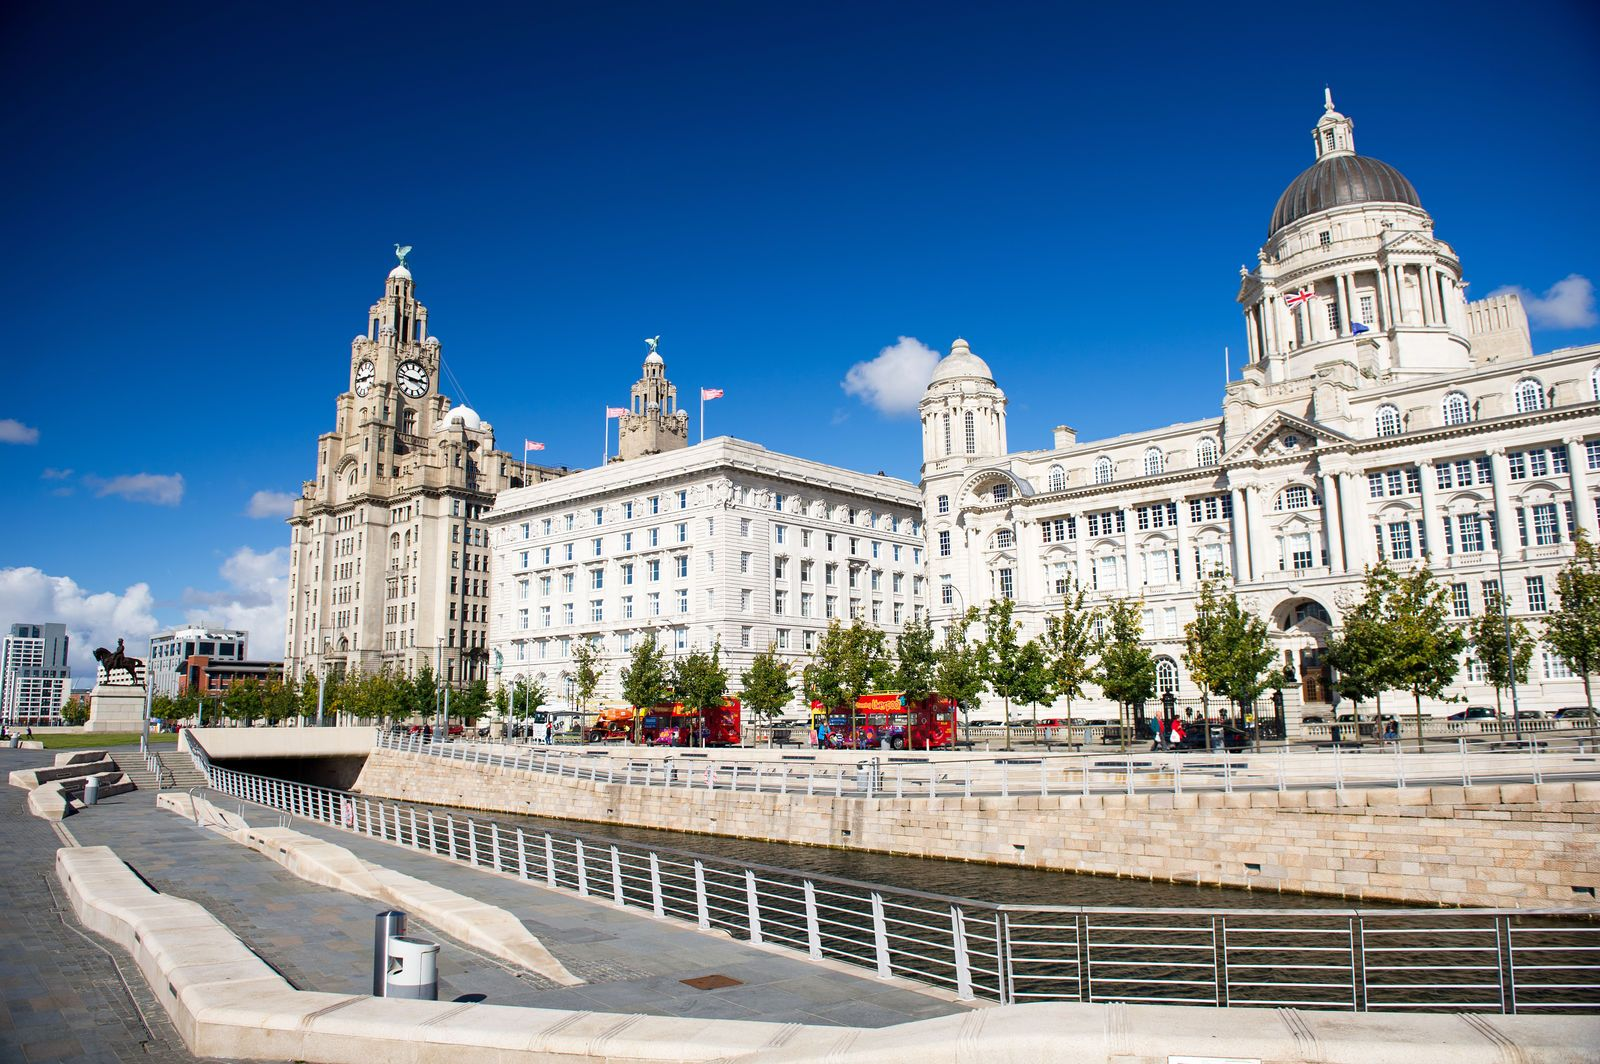 Liverpool was one of the British empire's most important harbour and was brought back to fame in recent history by the most successful rock band to have ever existed. Now a cultural capital of the North, Liverpool offers many Beatles-related attractions as well as more serious museums and monuments.